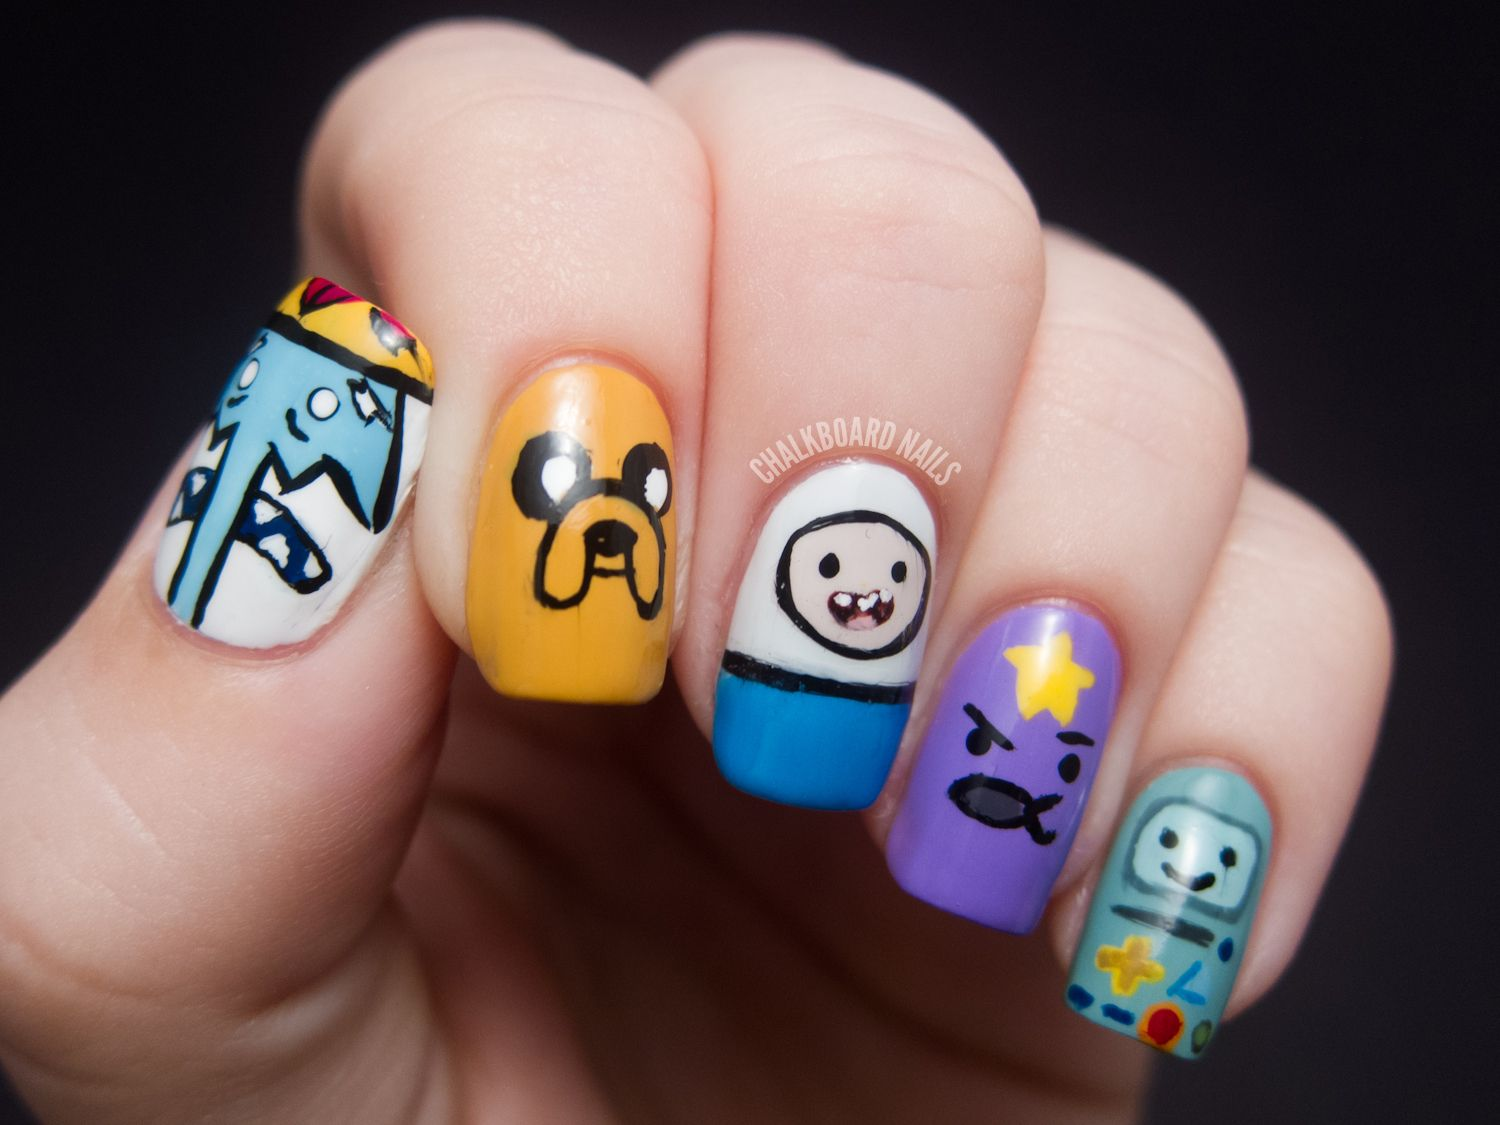 Chalkboard Nails: What time is it? - Adventure Time Nail Art